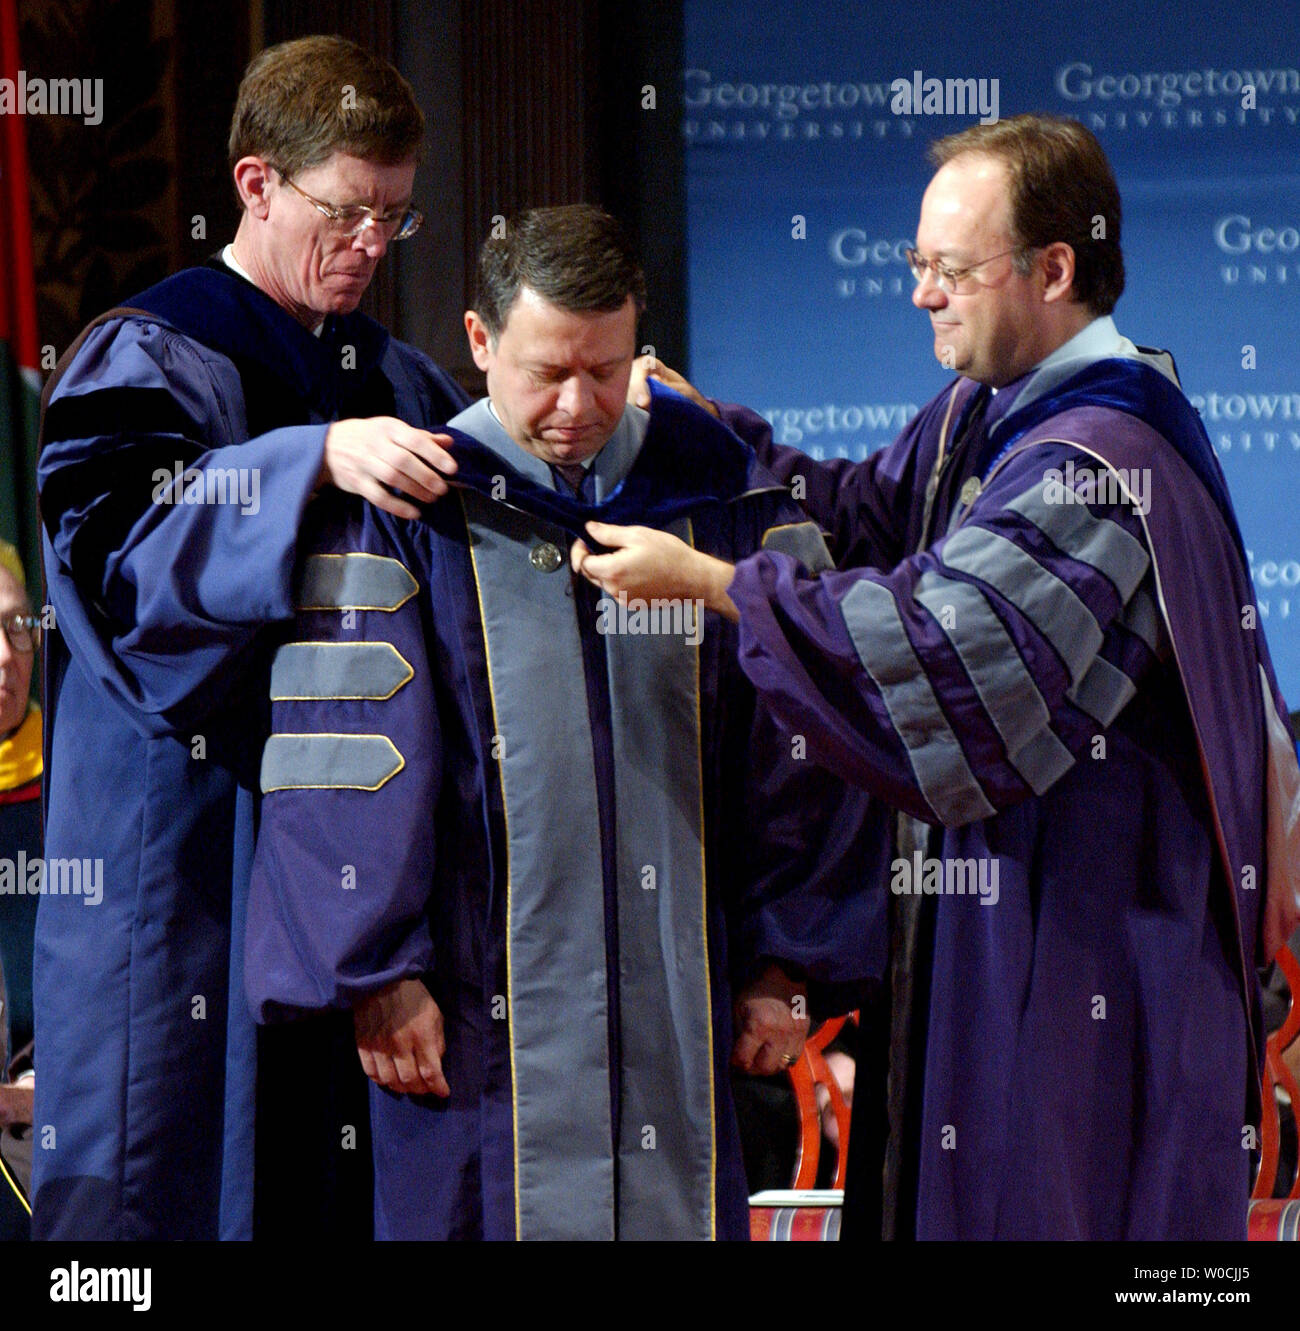 King Abdullah II of Jordan receives an honorary Doctorate of Humane Letters from Provost James J. O'Donnell, left, and President John J. DeGioia at Georgetown University on March 21, 2005.   (UPI Photo/Roger L. Wollenberg) - Stock Image